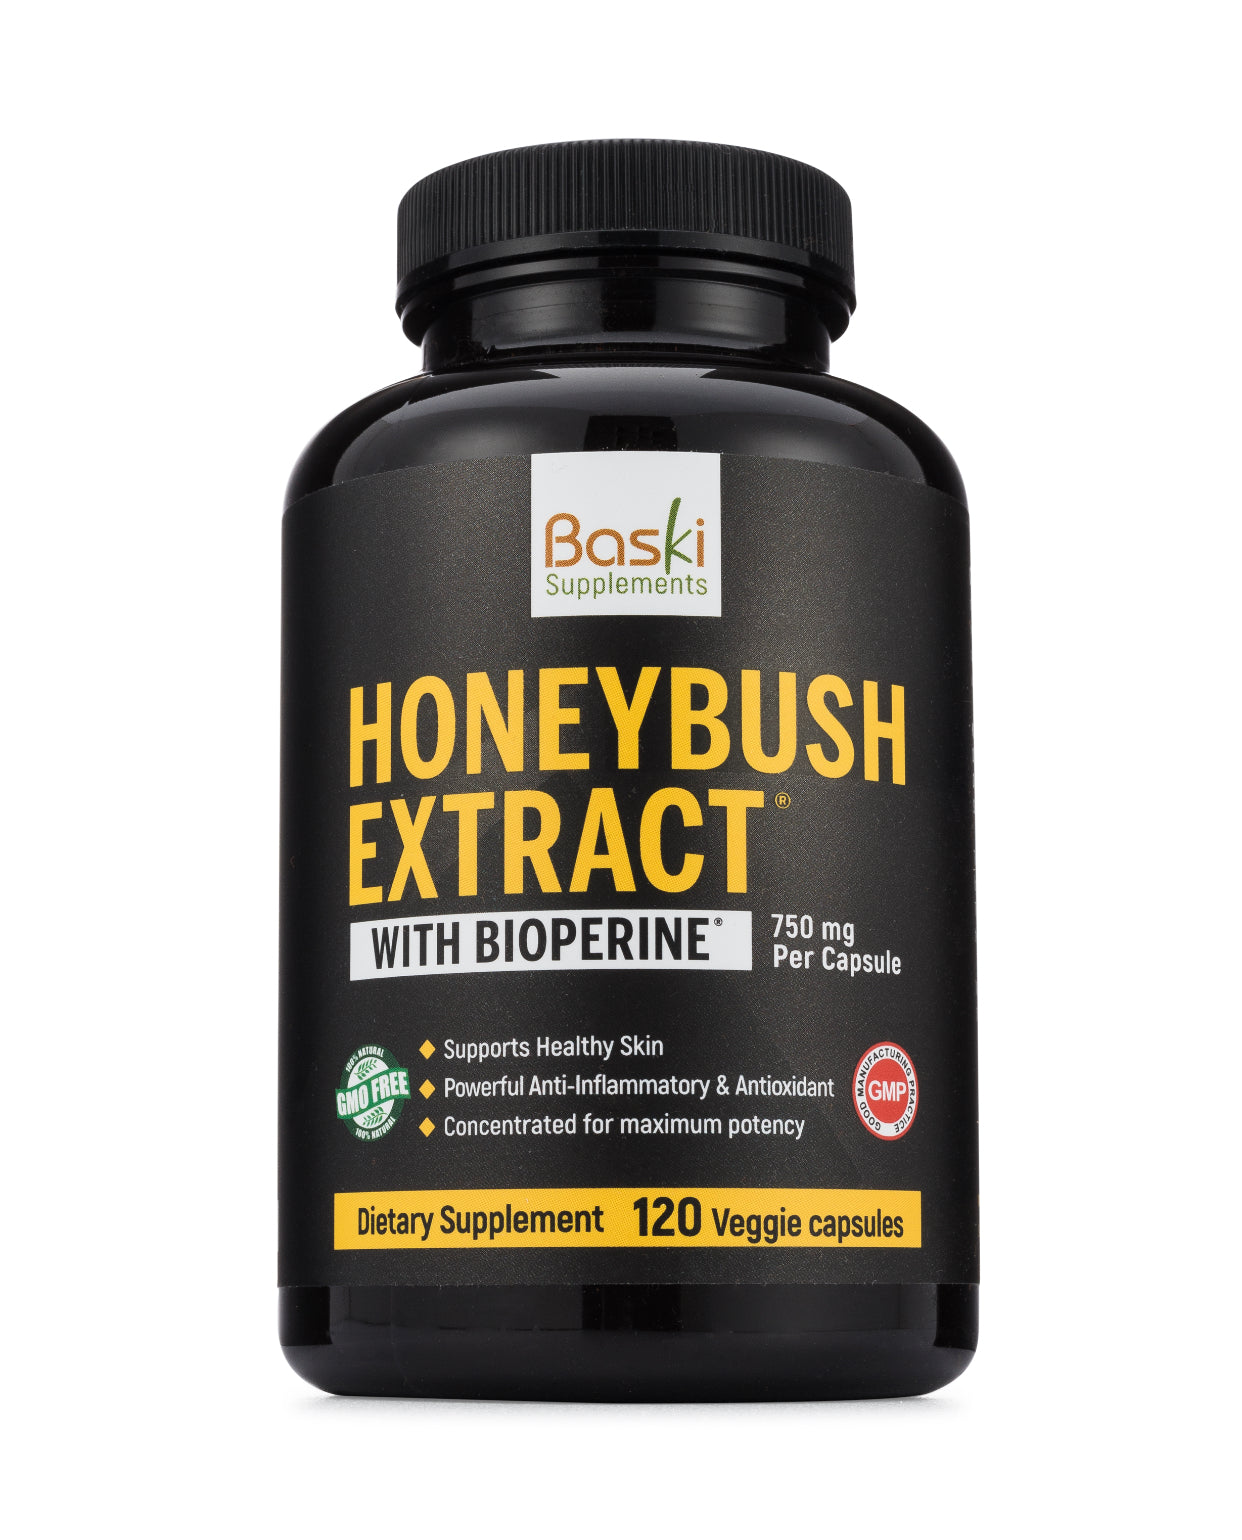 Honeybush Extract